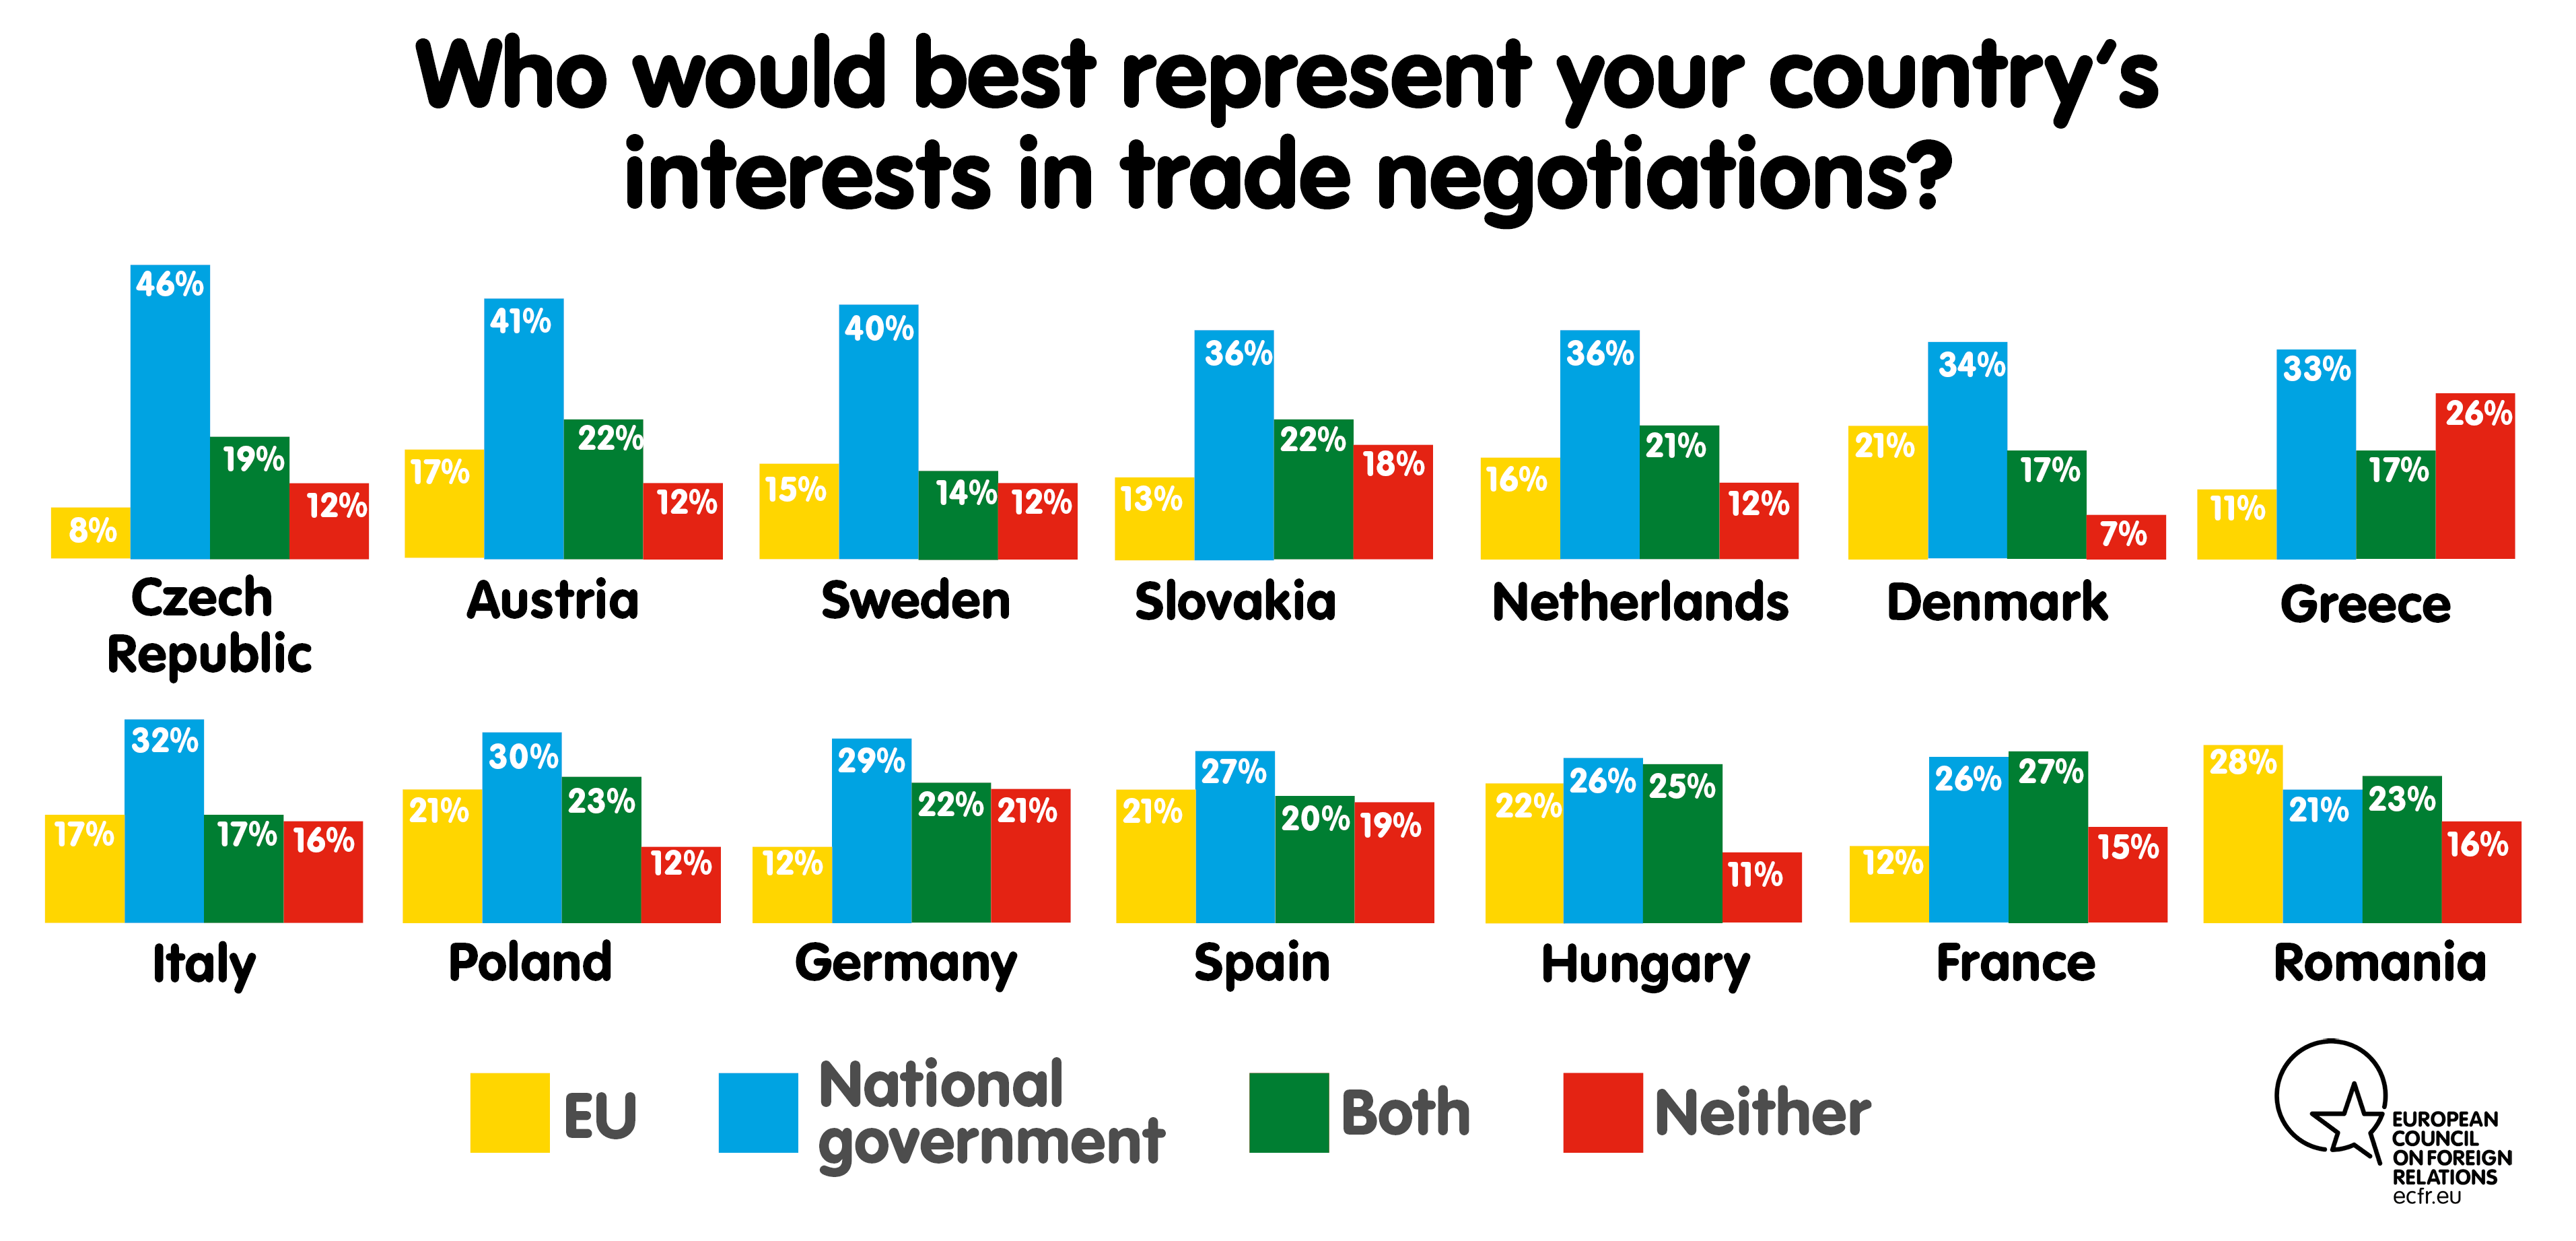 Who would best represent your country's interests in trade negotiations?